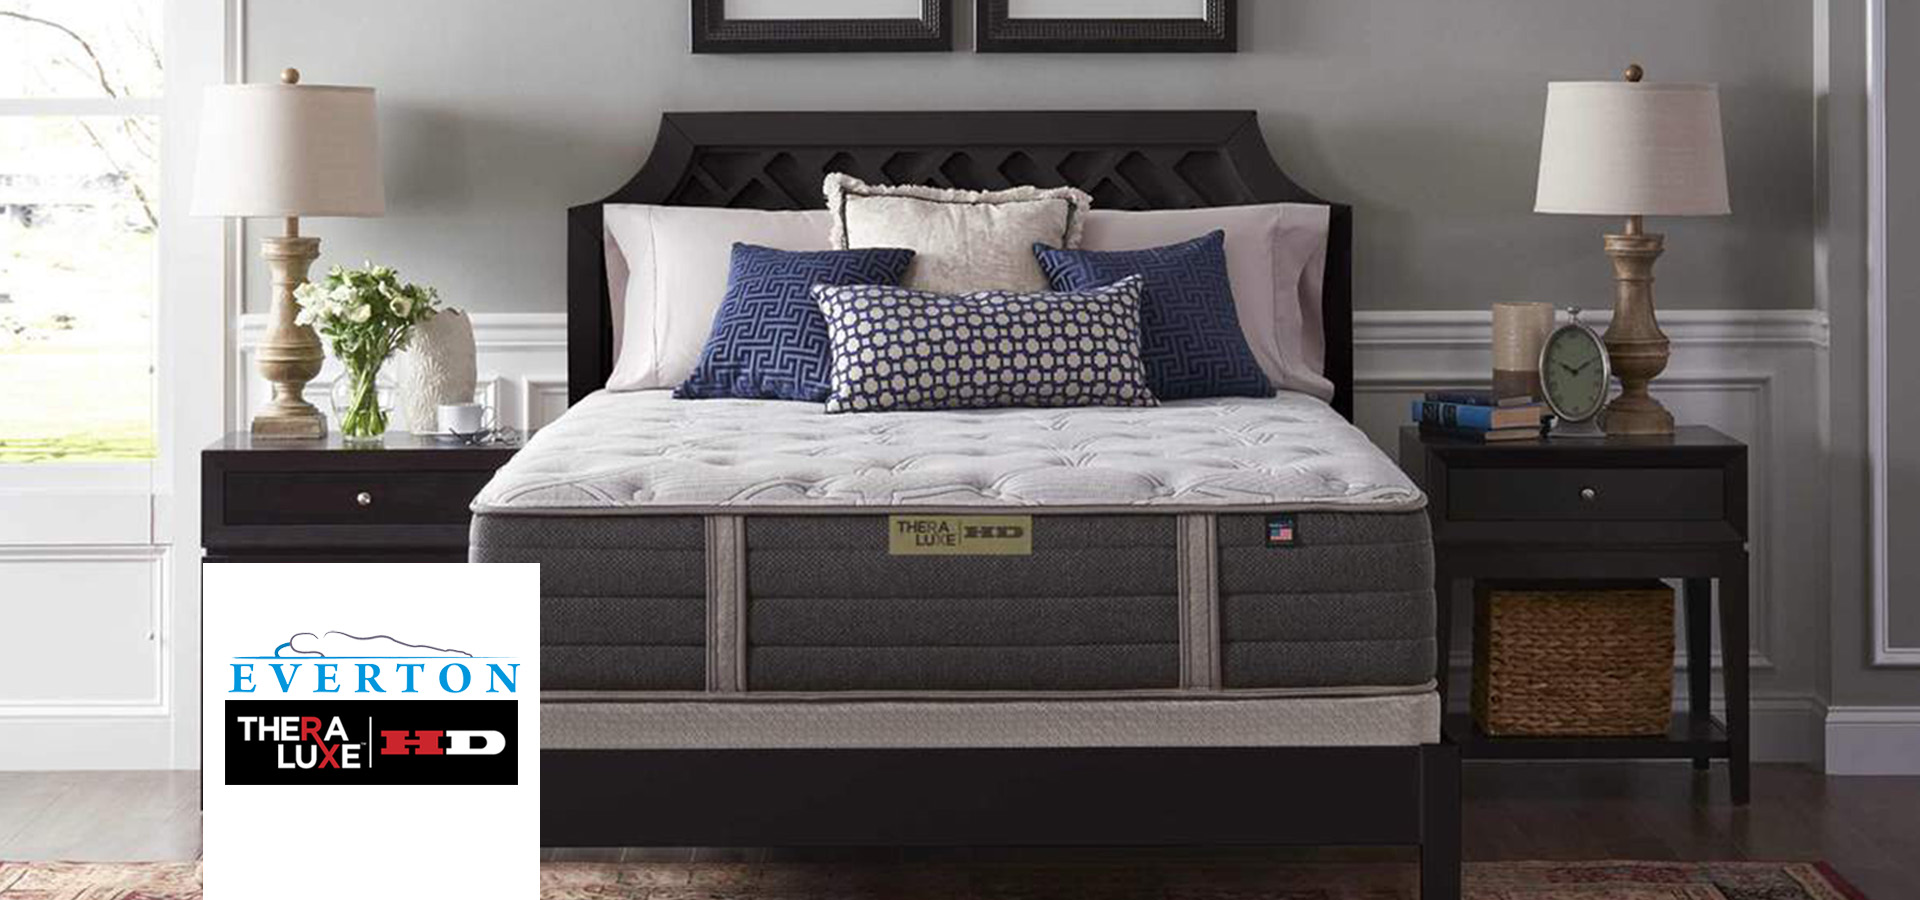 Theraluxe Hd By Everton Mattress Rx